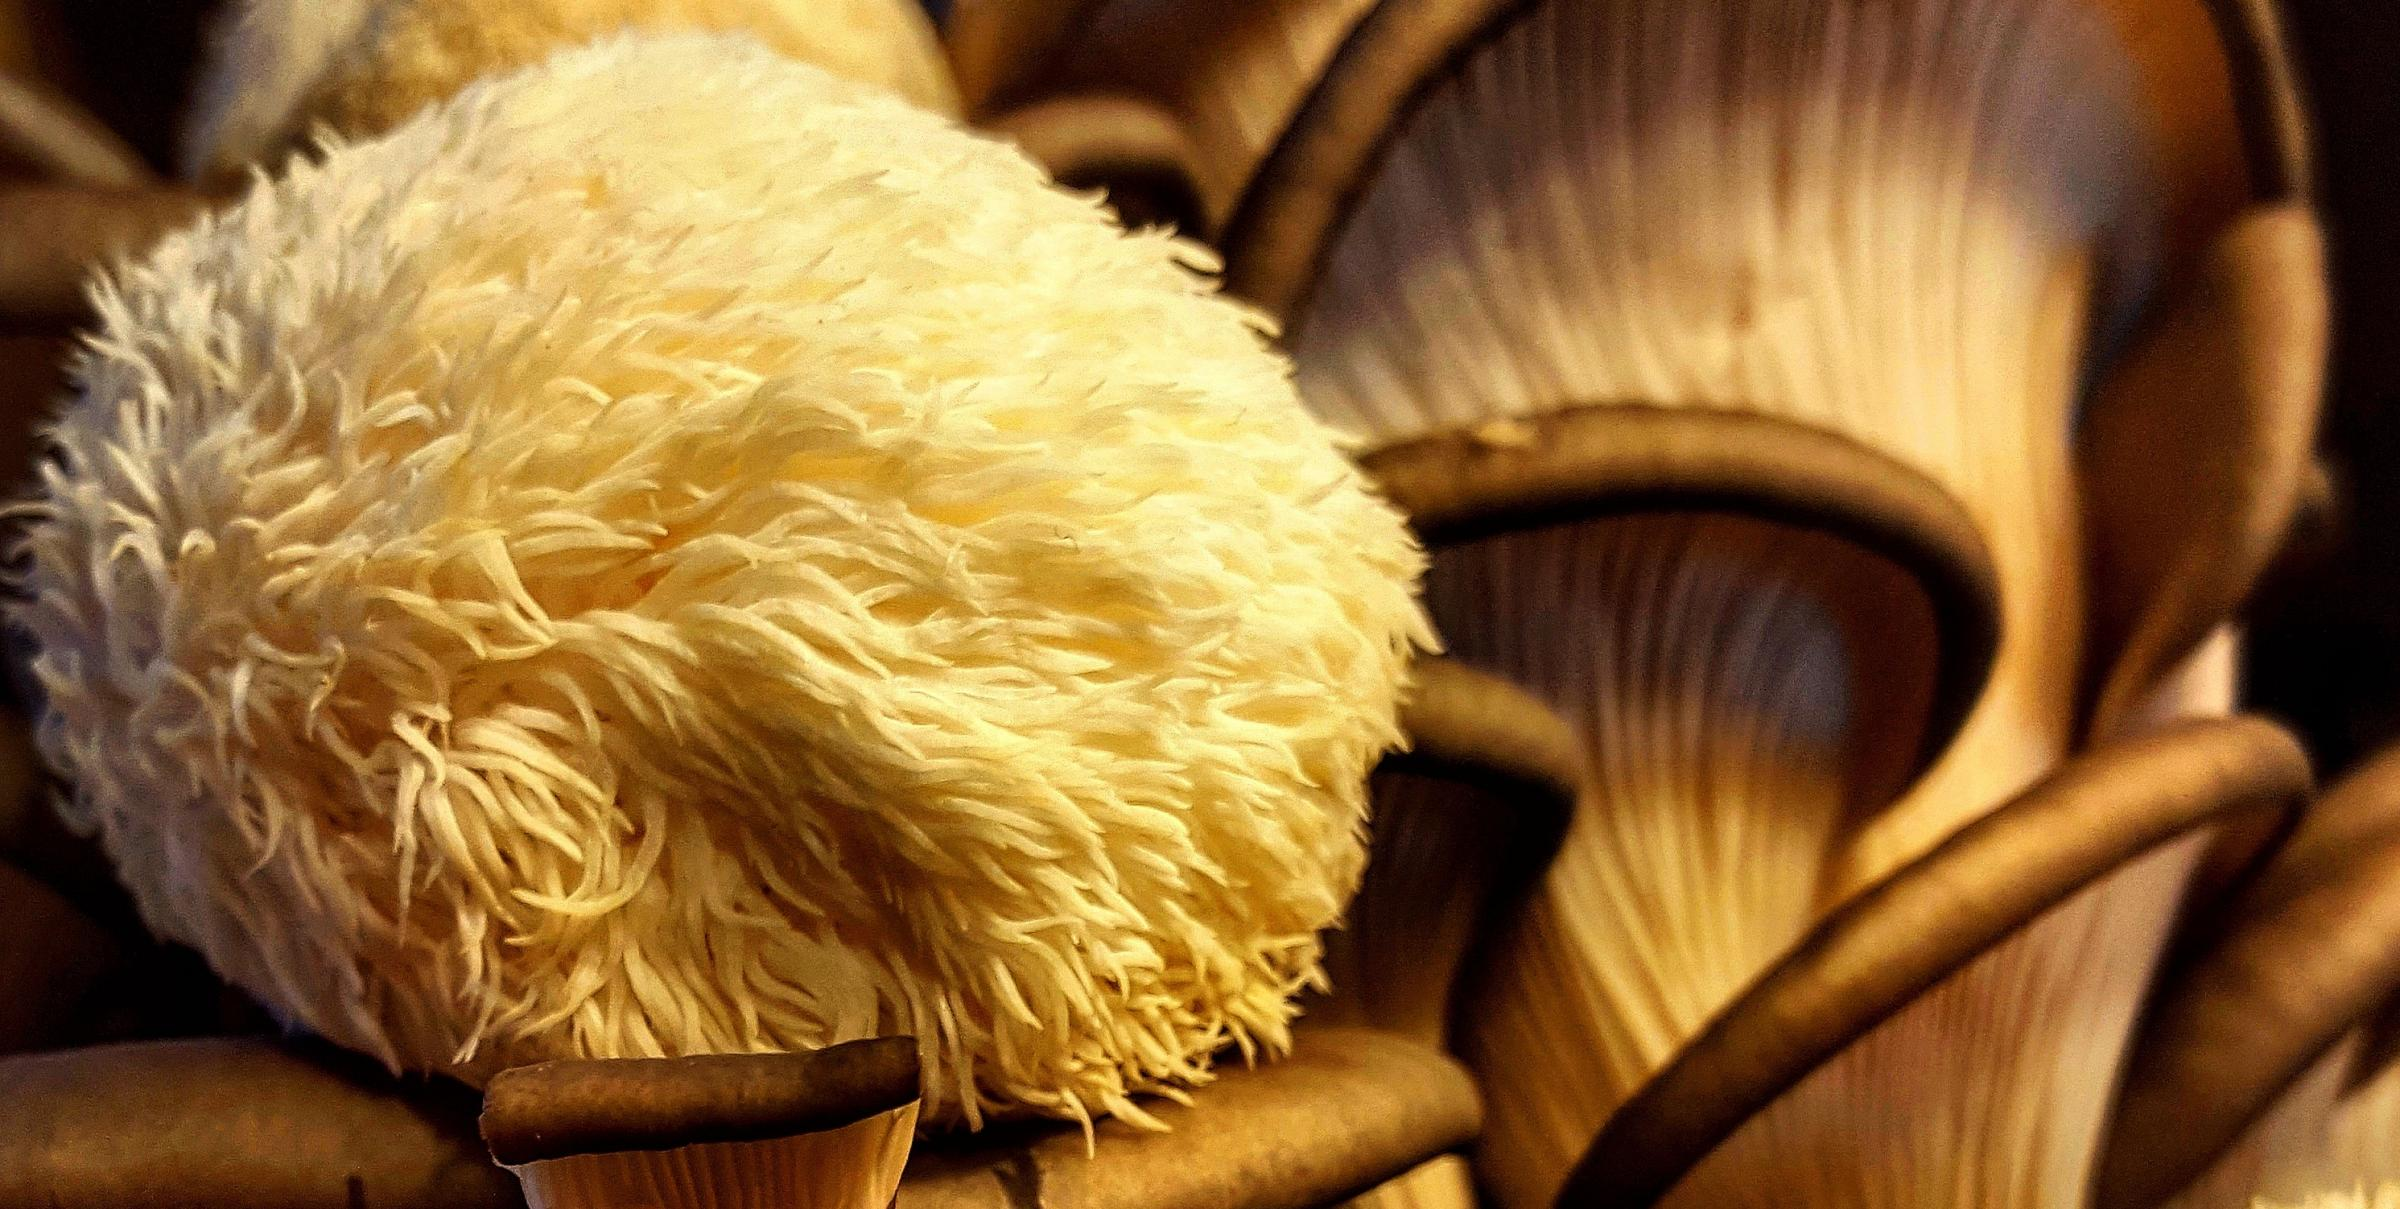 The 'Lion's Mane' mushroom – named for its resemblance